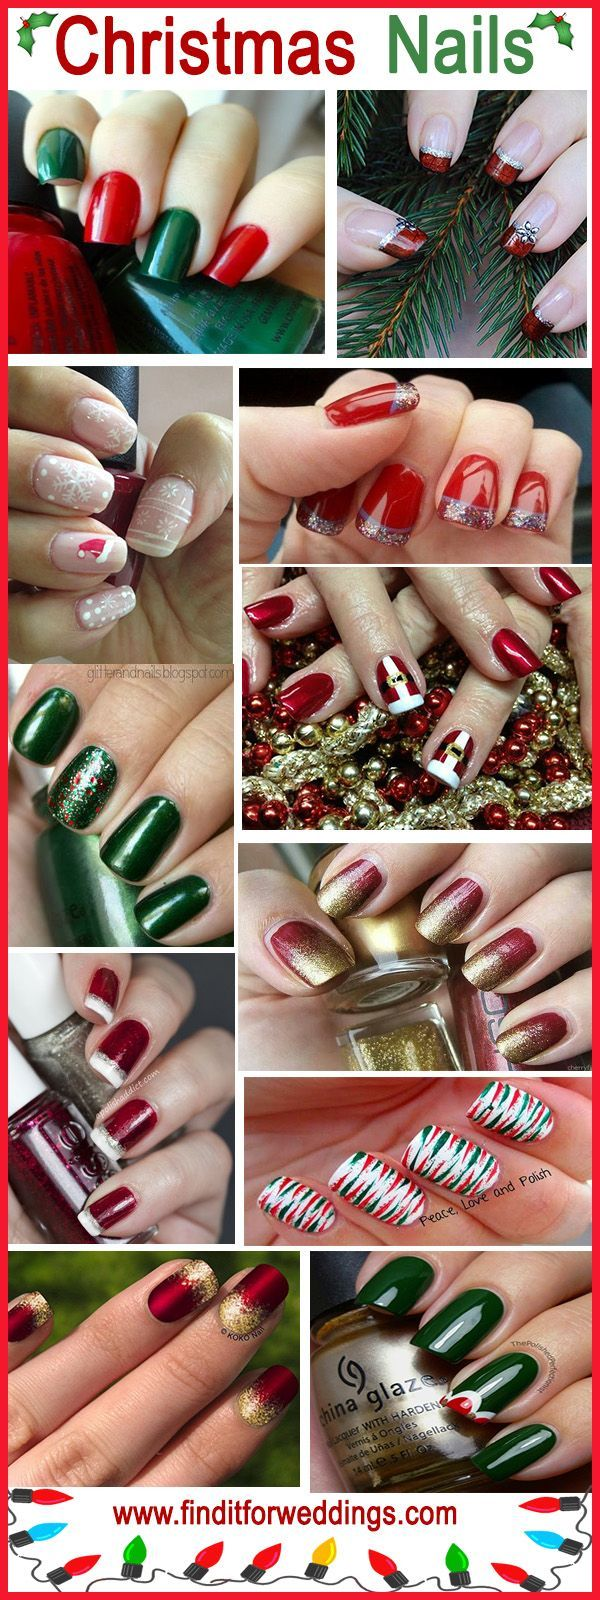 Christmas nail designs...decorate the hands that will be doing all the Christmas…